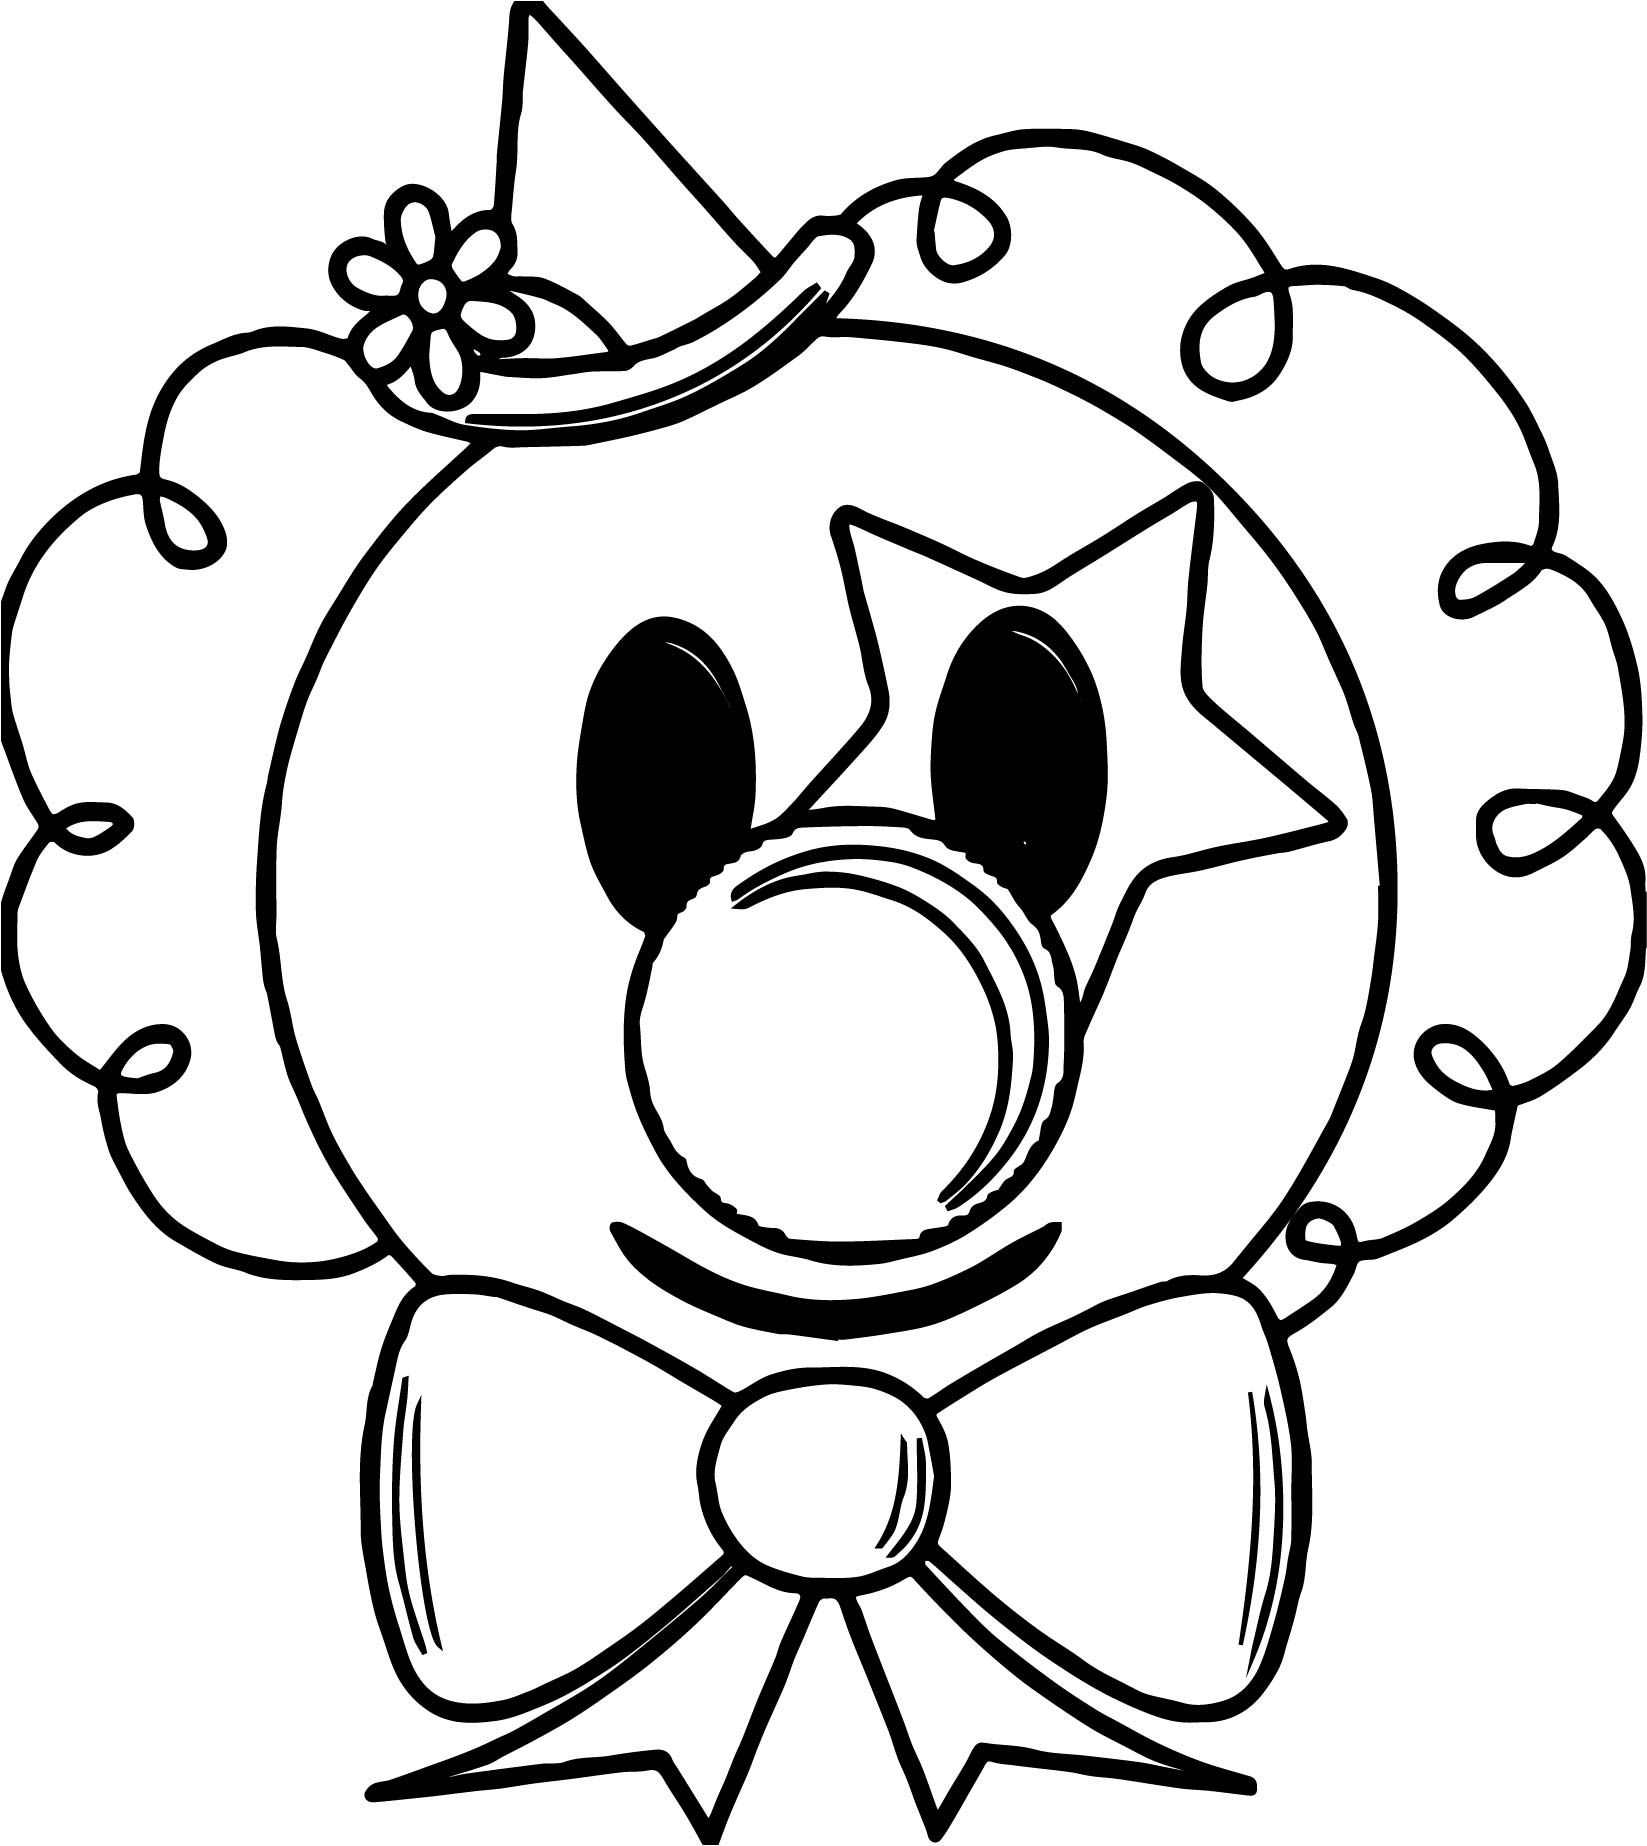 clown face coloring pages - photo#18